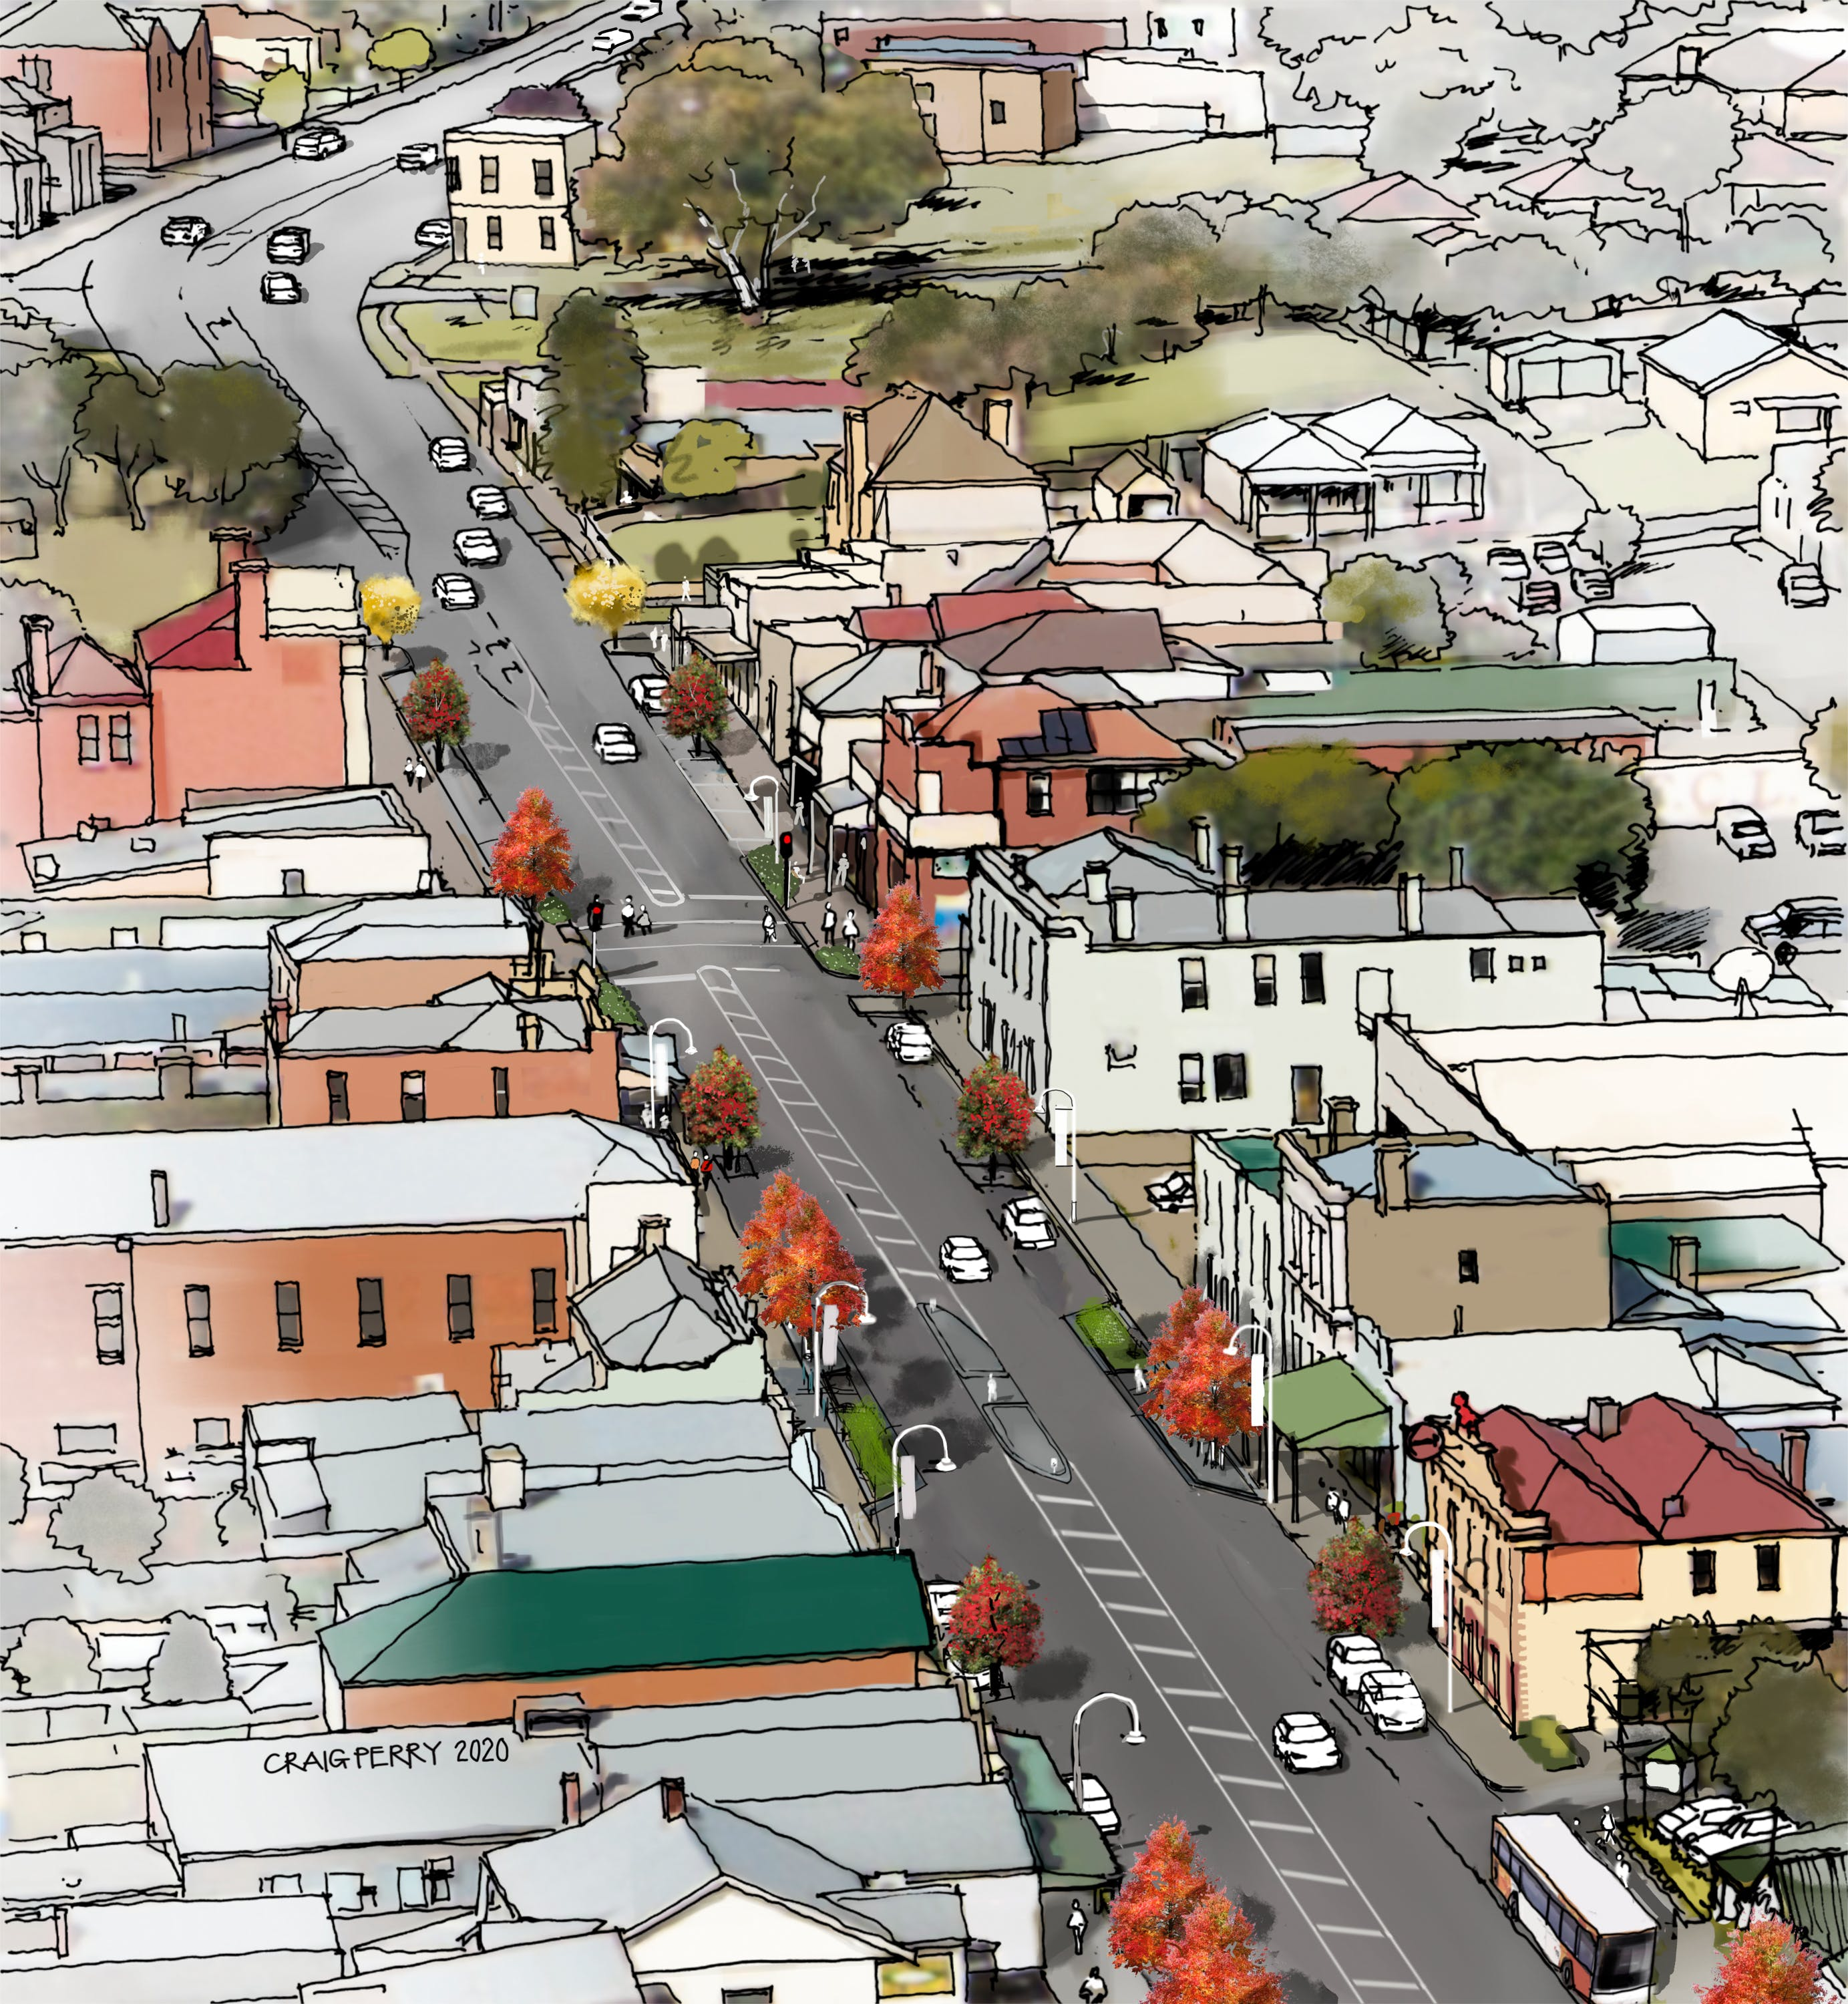 Aerial view of Sydney Street looking south with street trees and pedestrian refuges shown